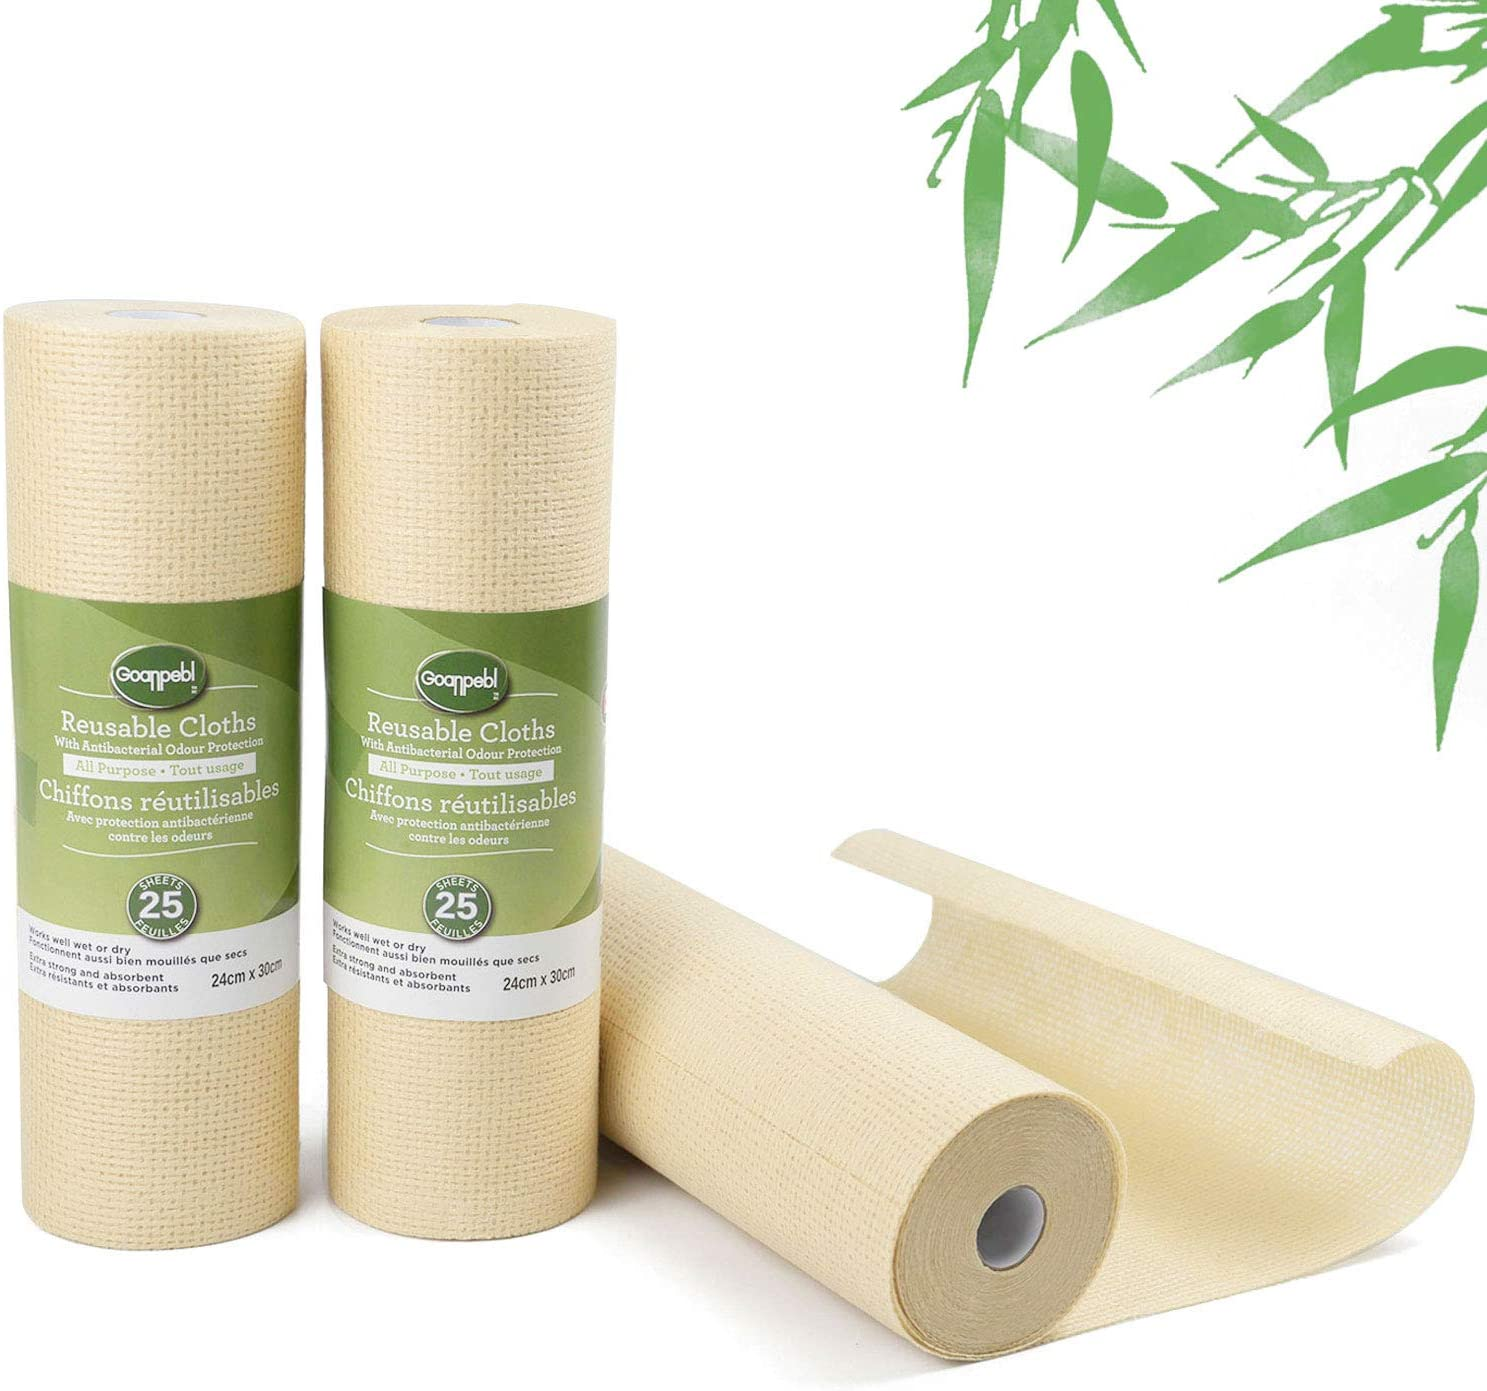 Bamboo Towels Reusable Paper Towels